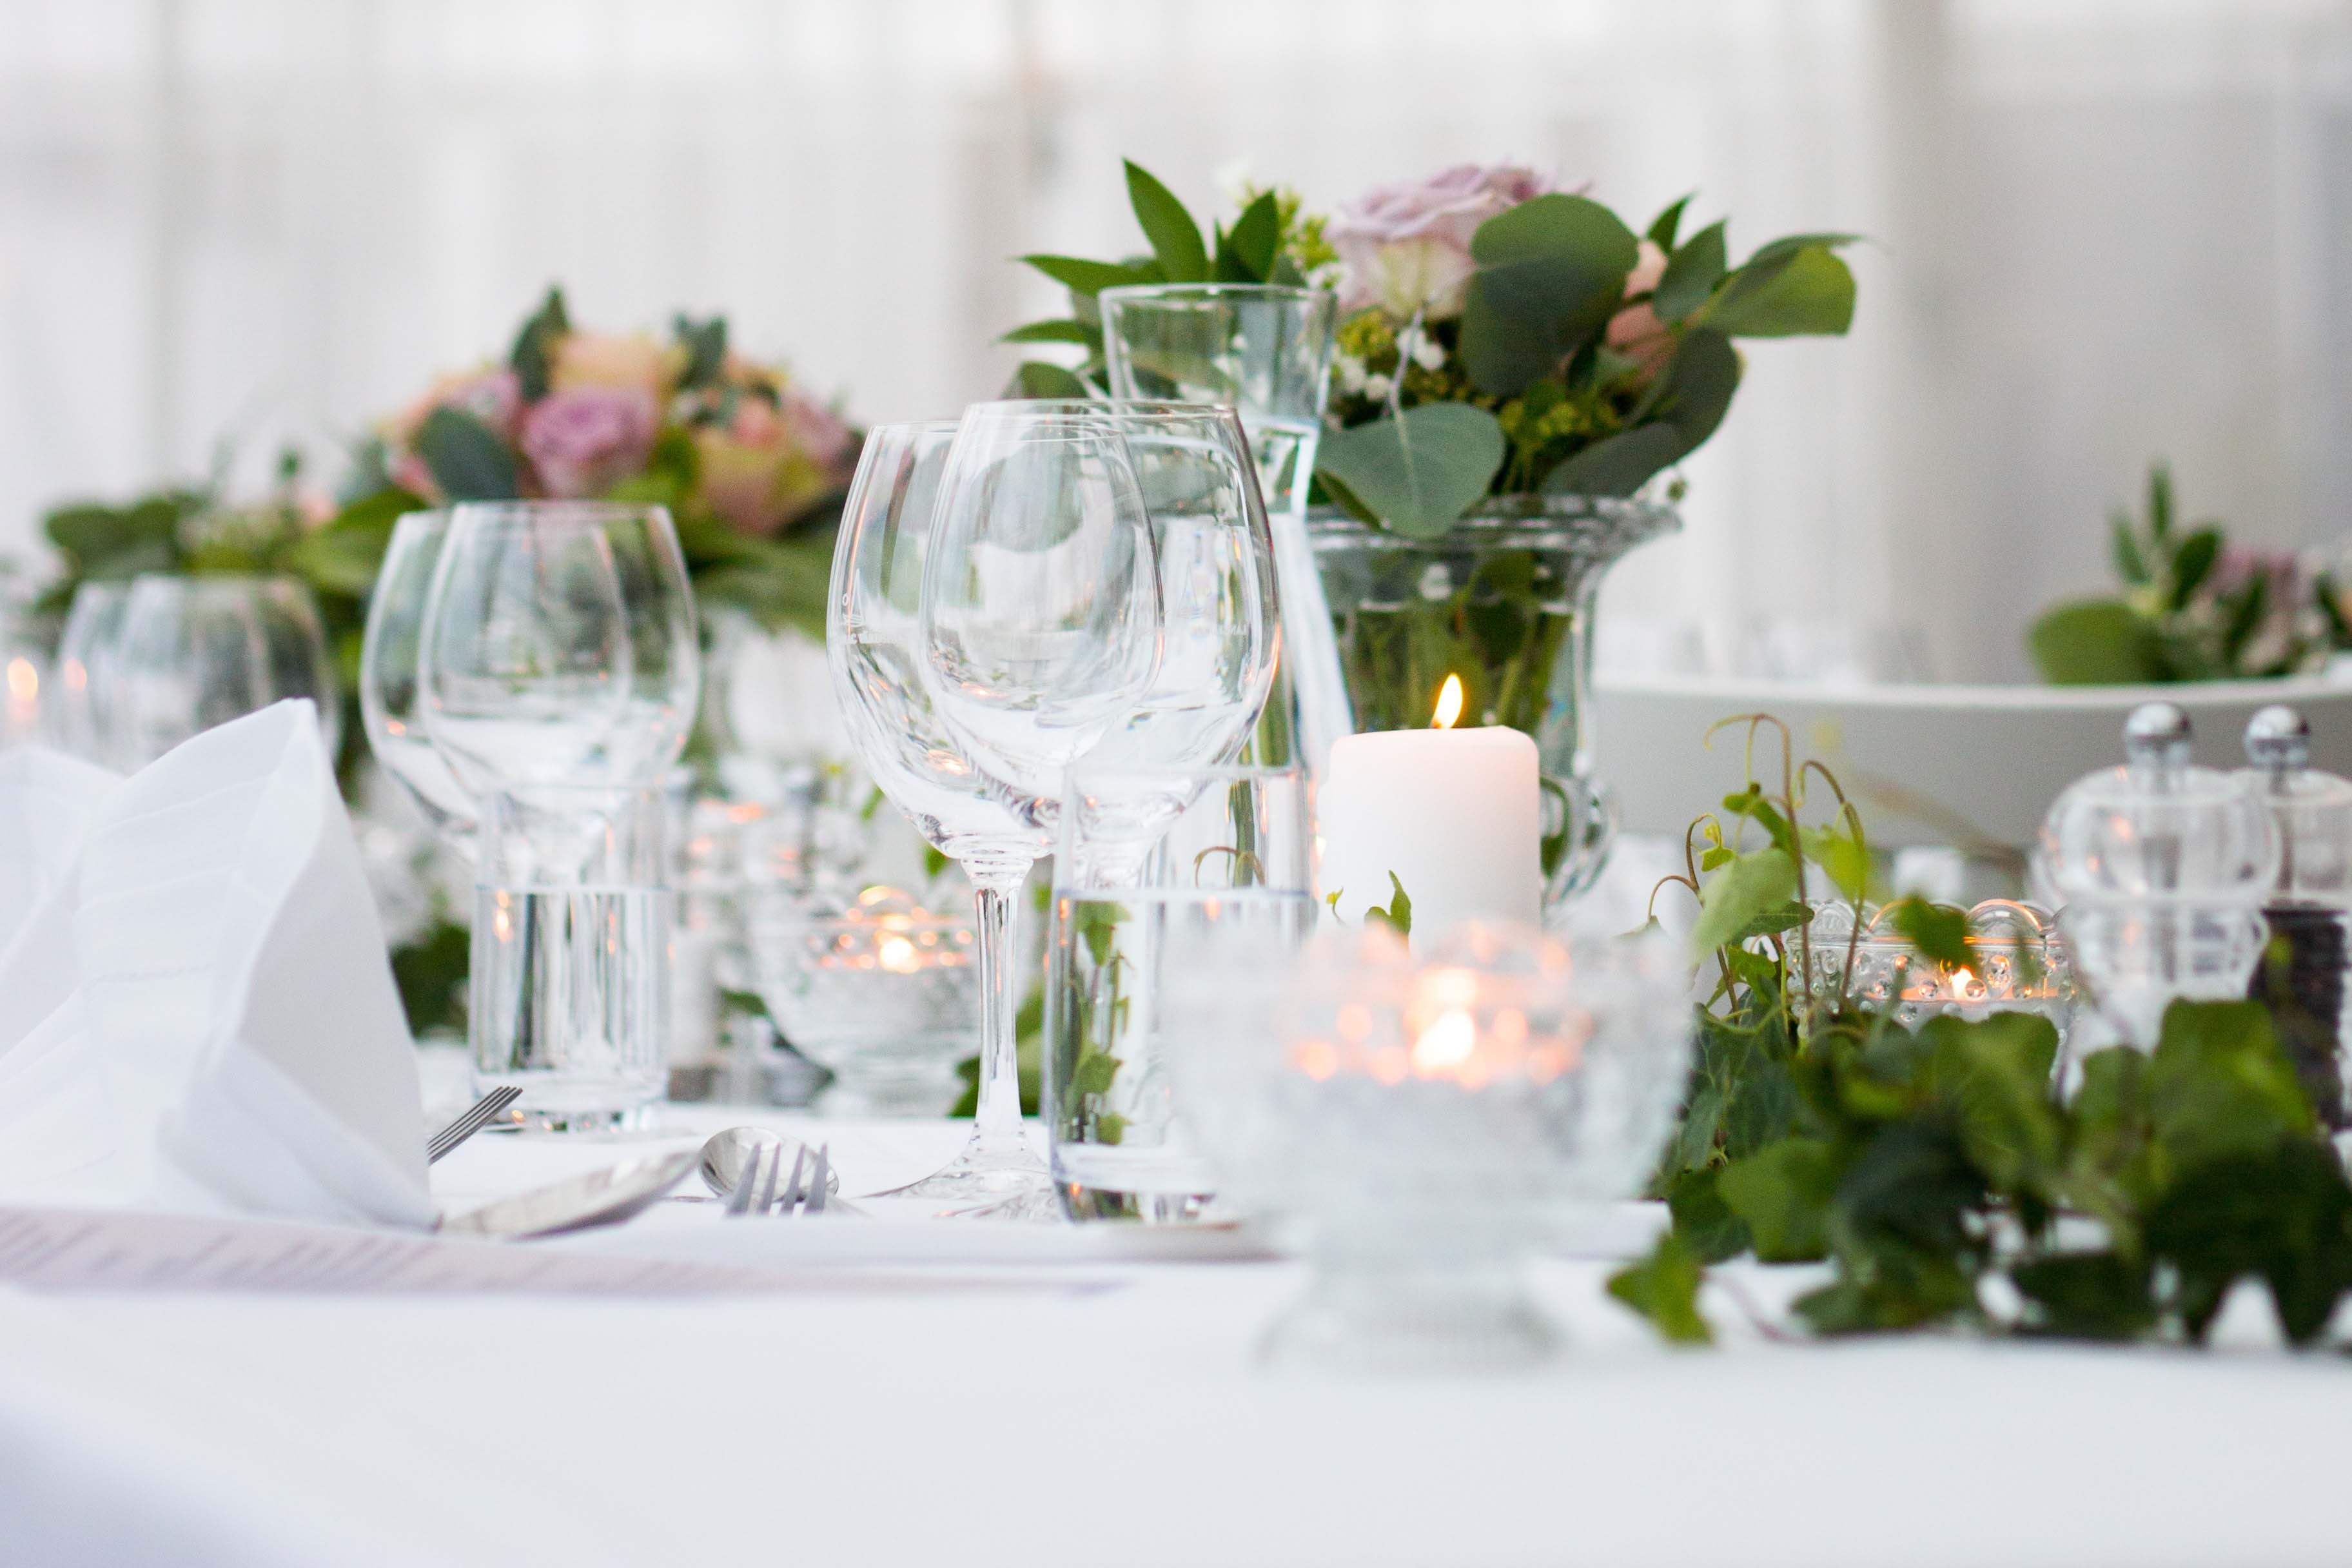 Empty wine glasses on white table with leaves, flowers and candles.